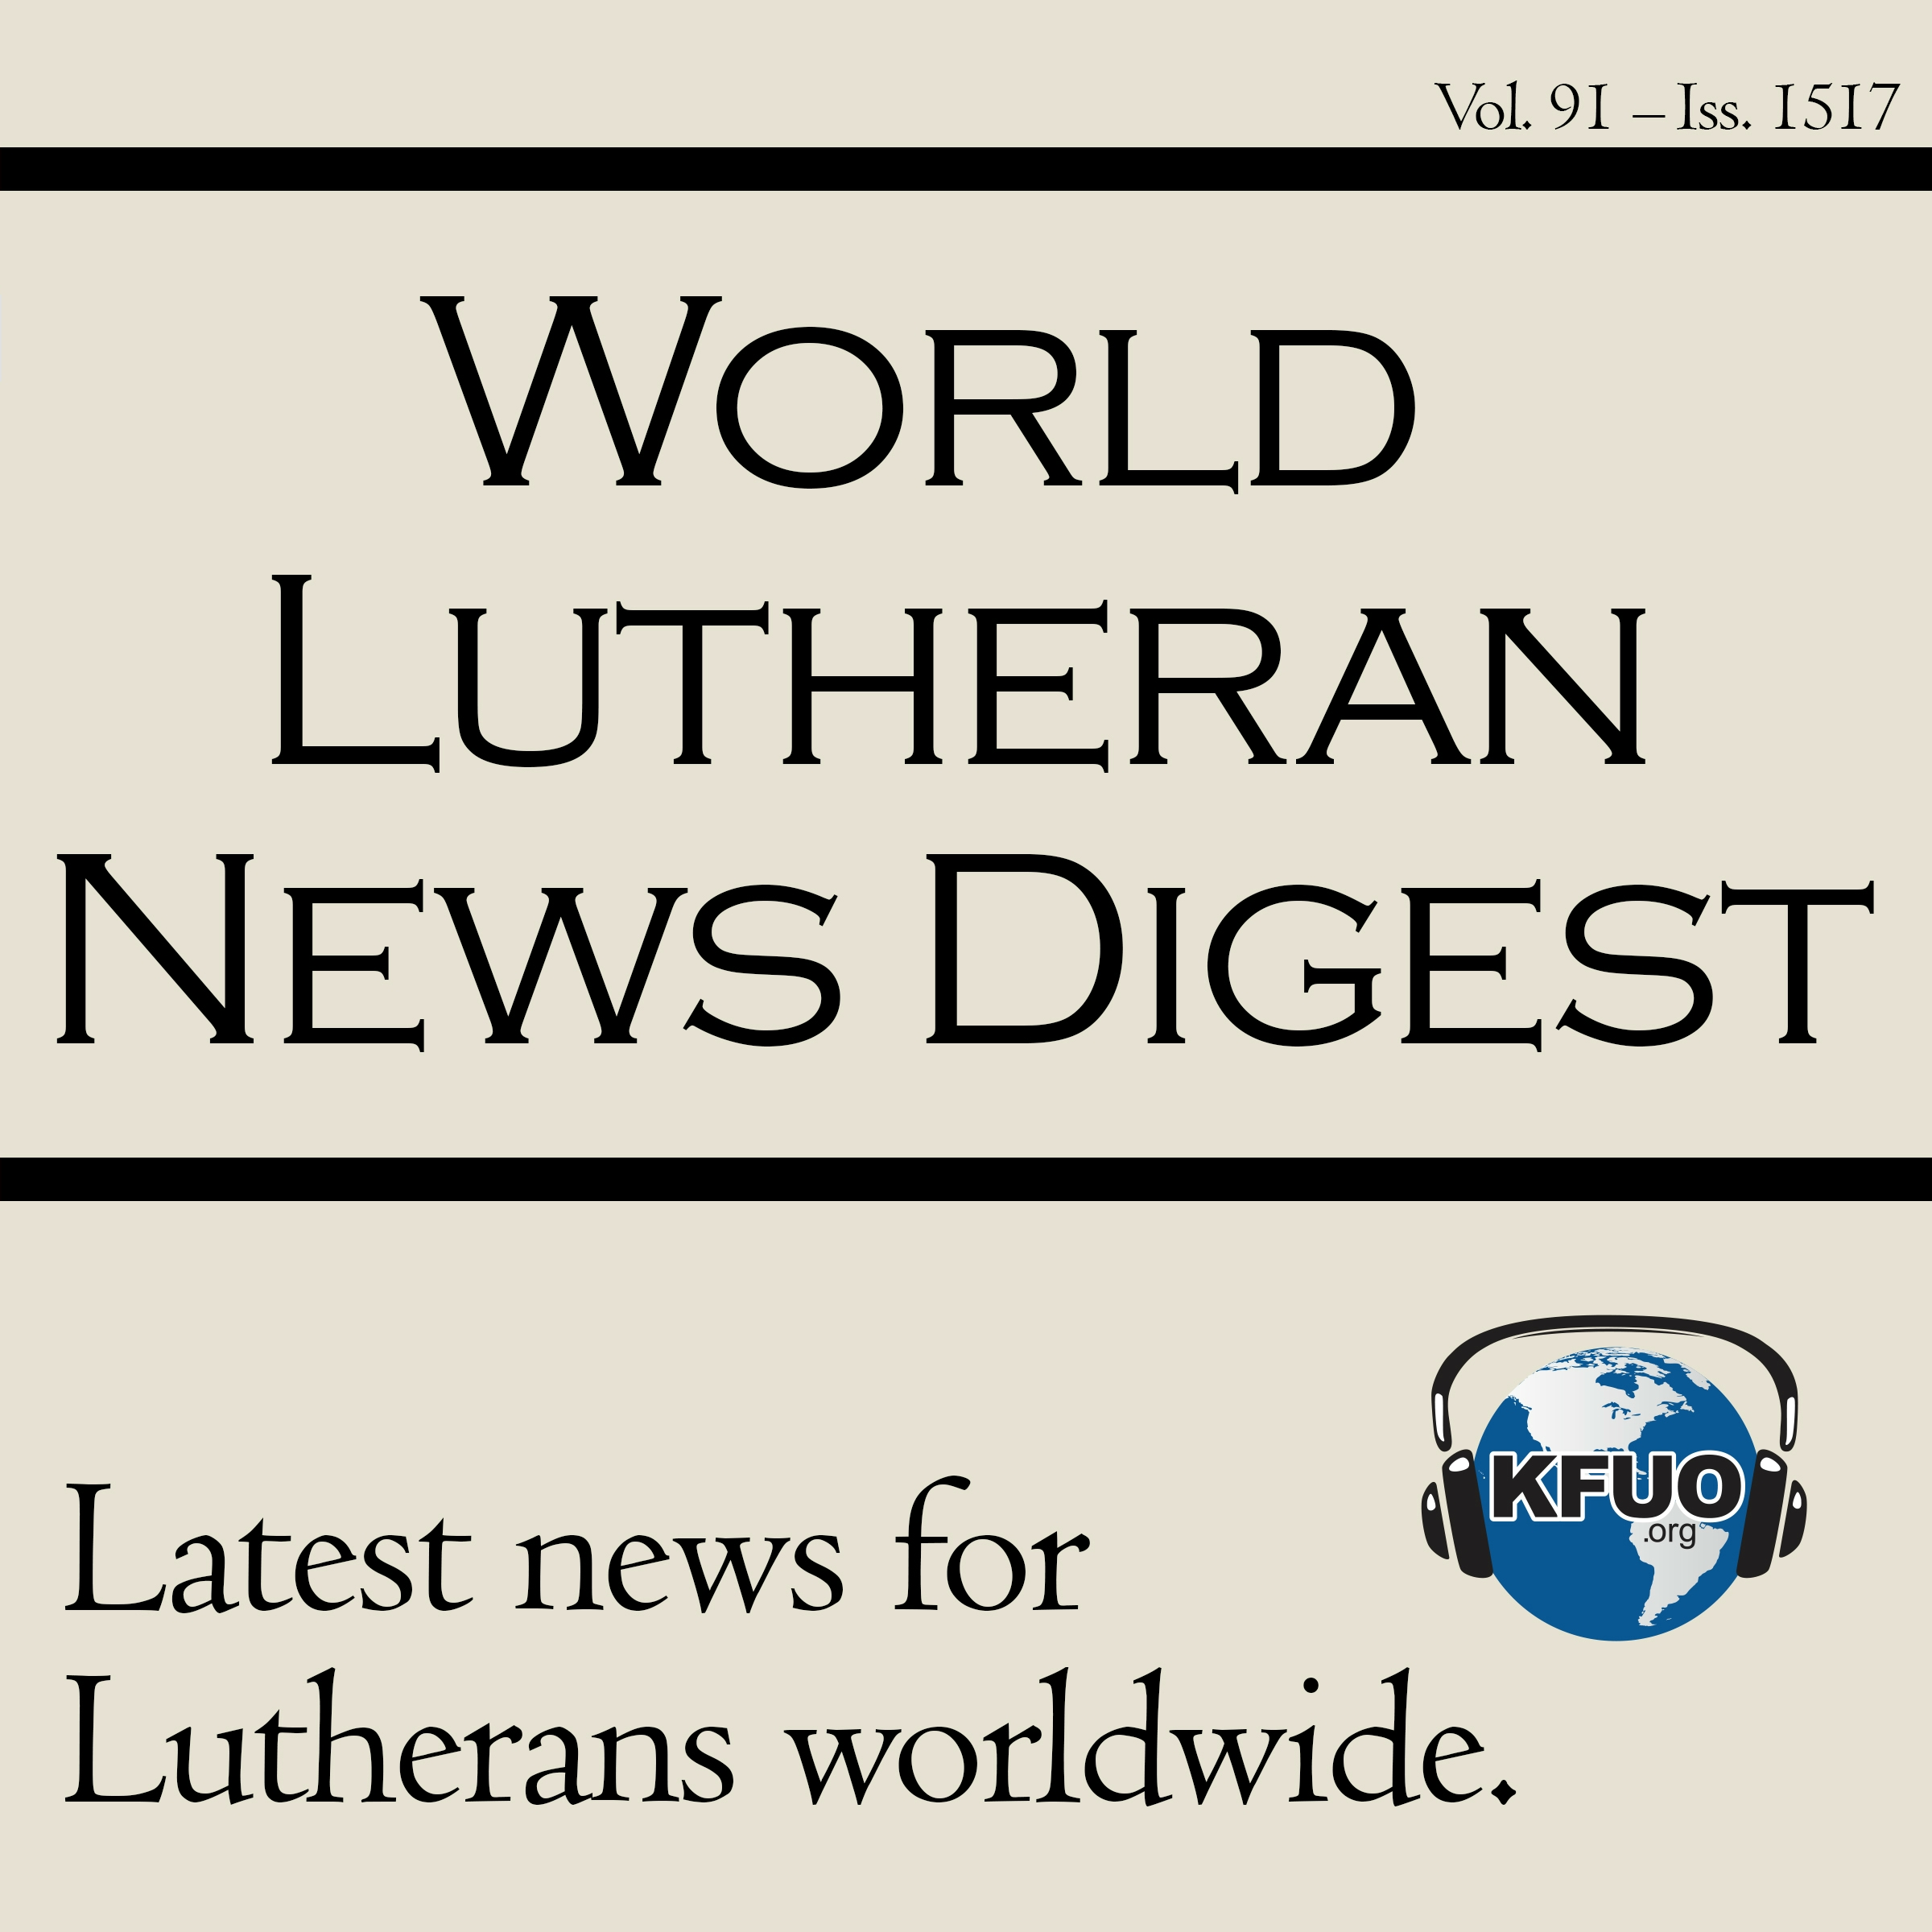 World Lutheran News Digest - KFUO